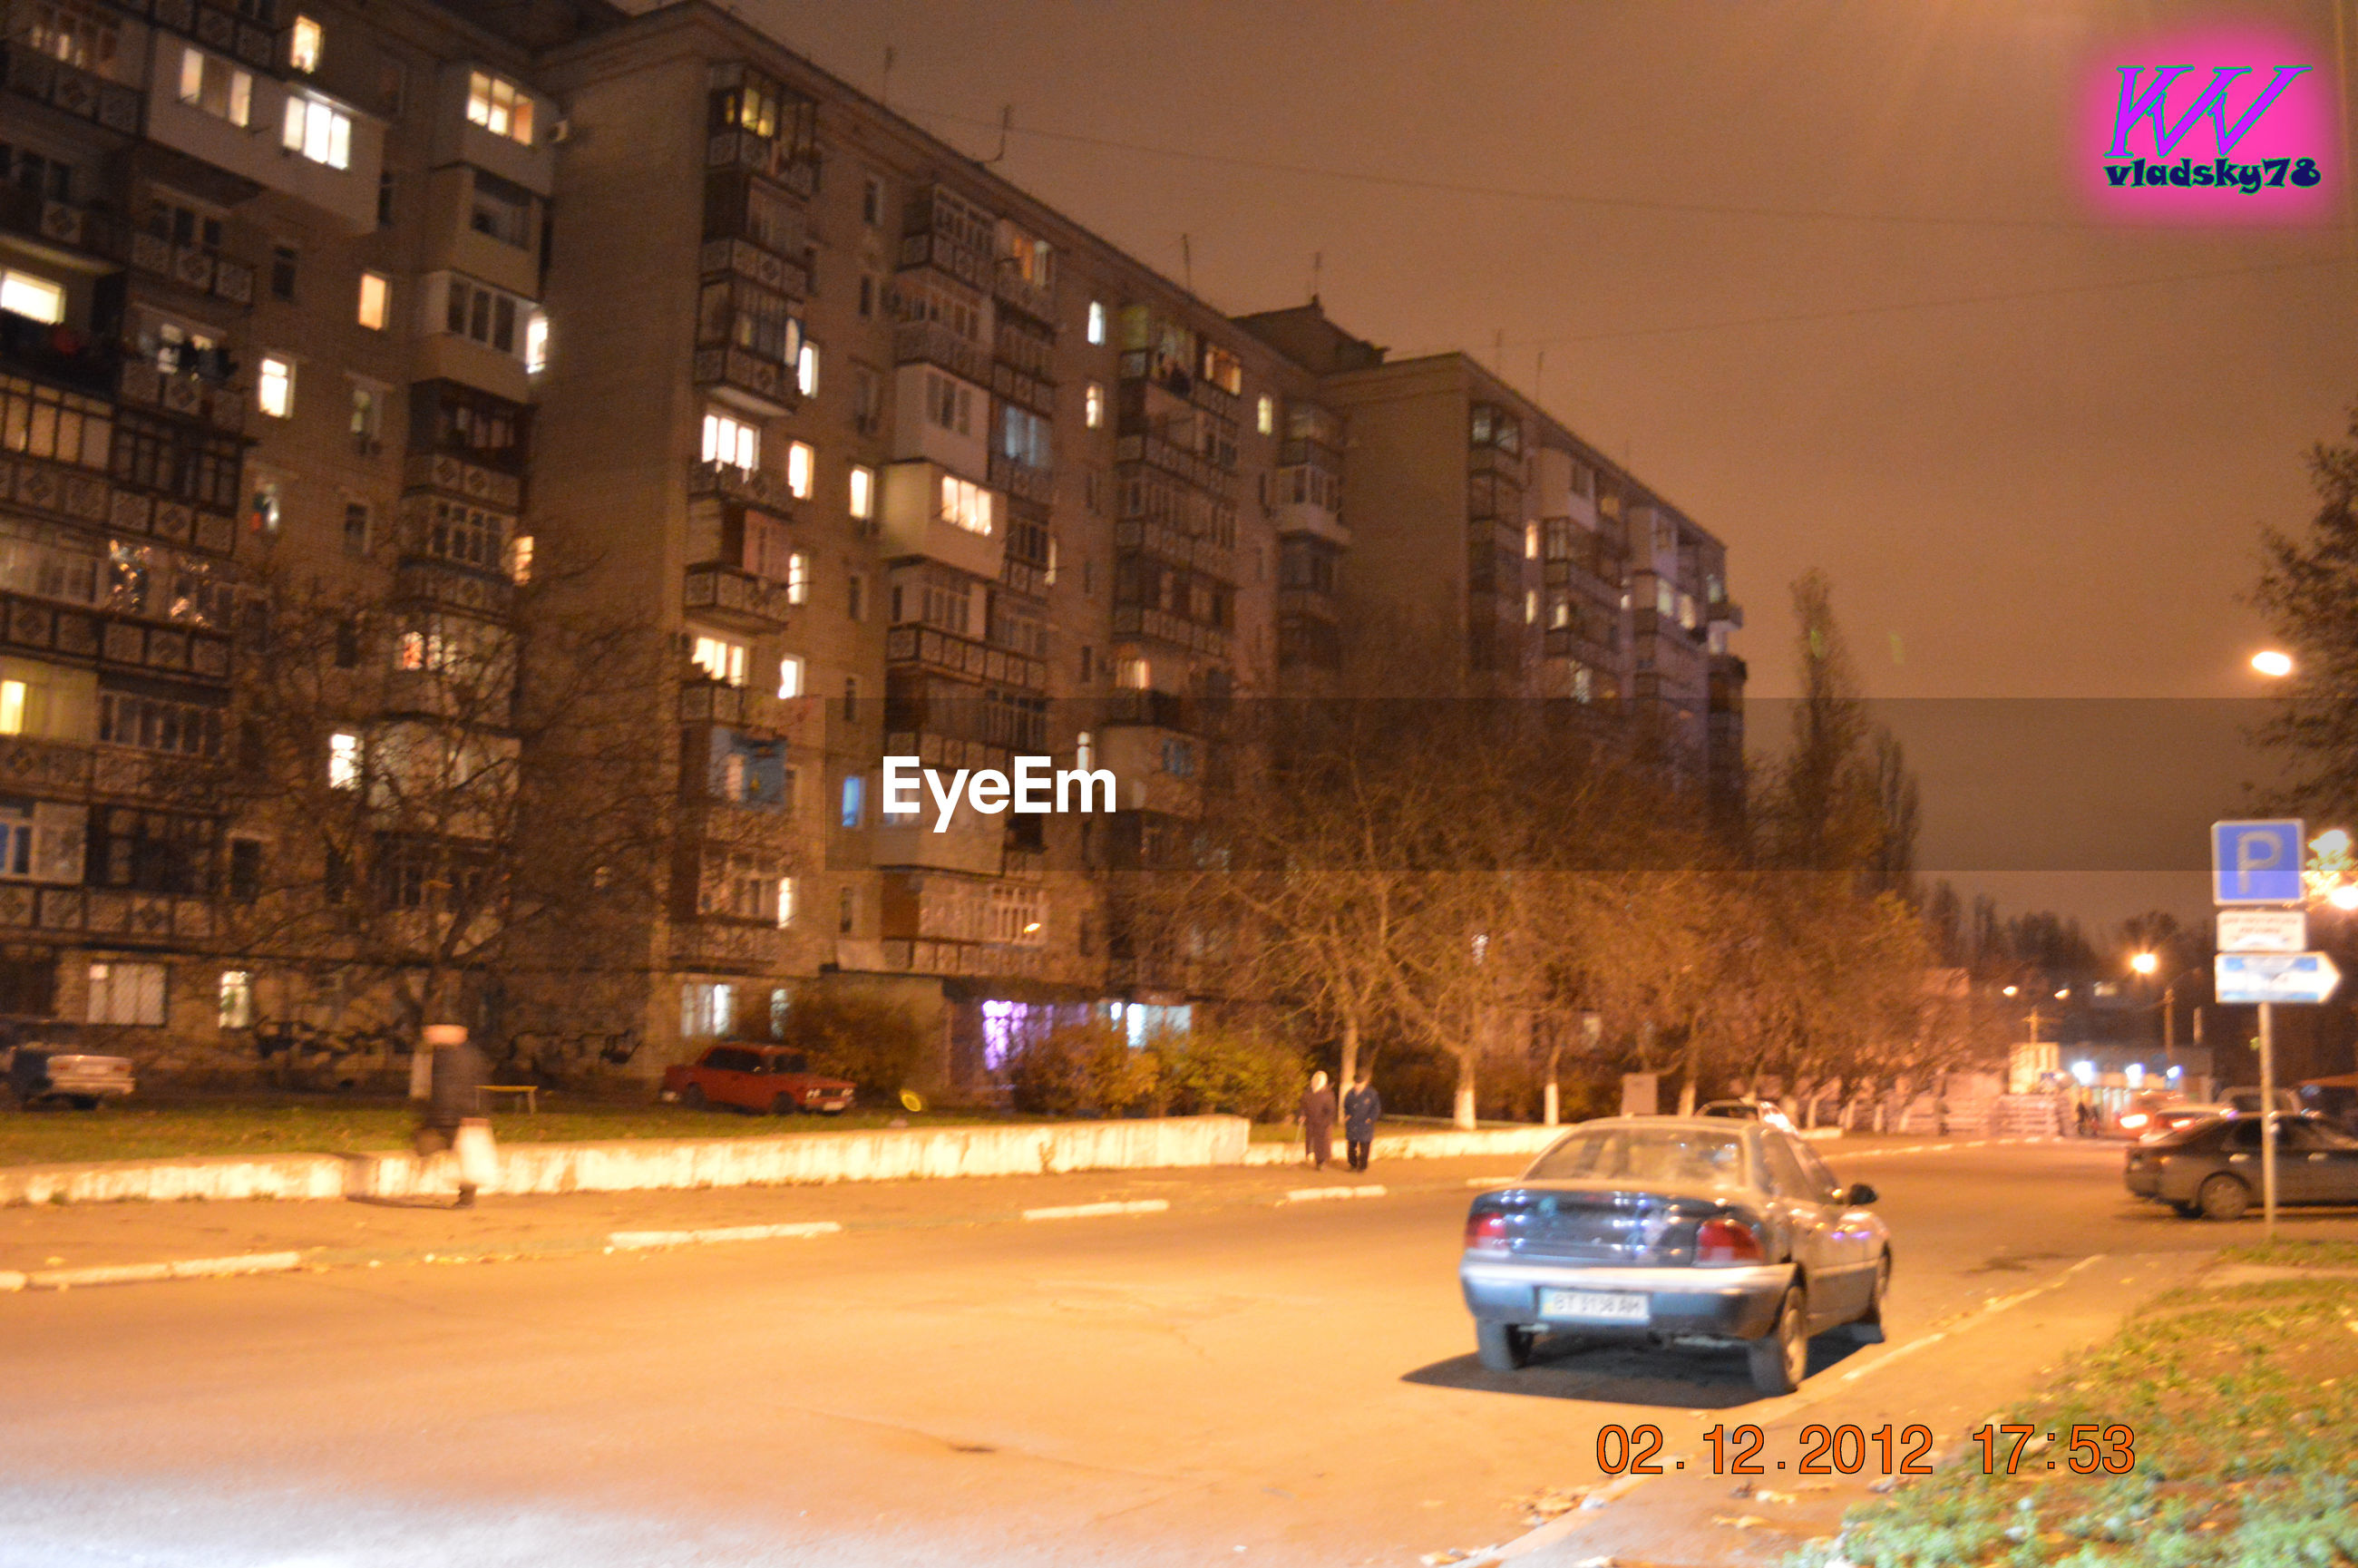 city, illuminated, building exterior, car, snow, transportation, night, city life, built structure, cold temperature, winter, outdoors, architecture, snowing, no people